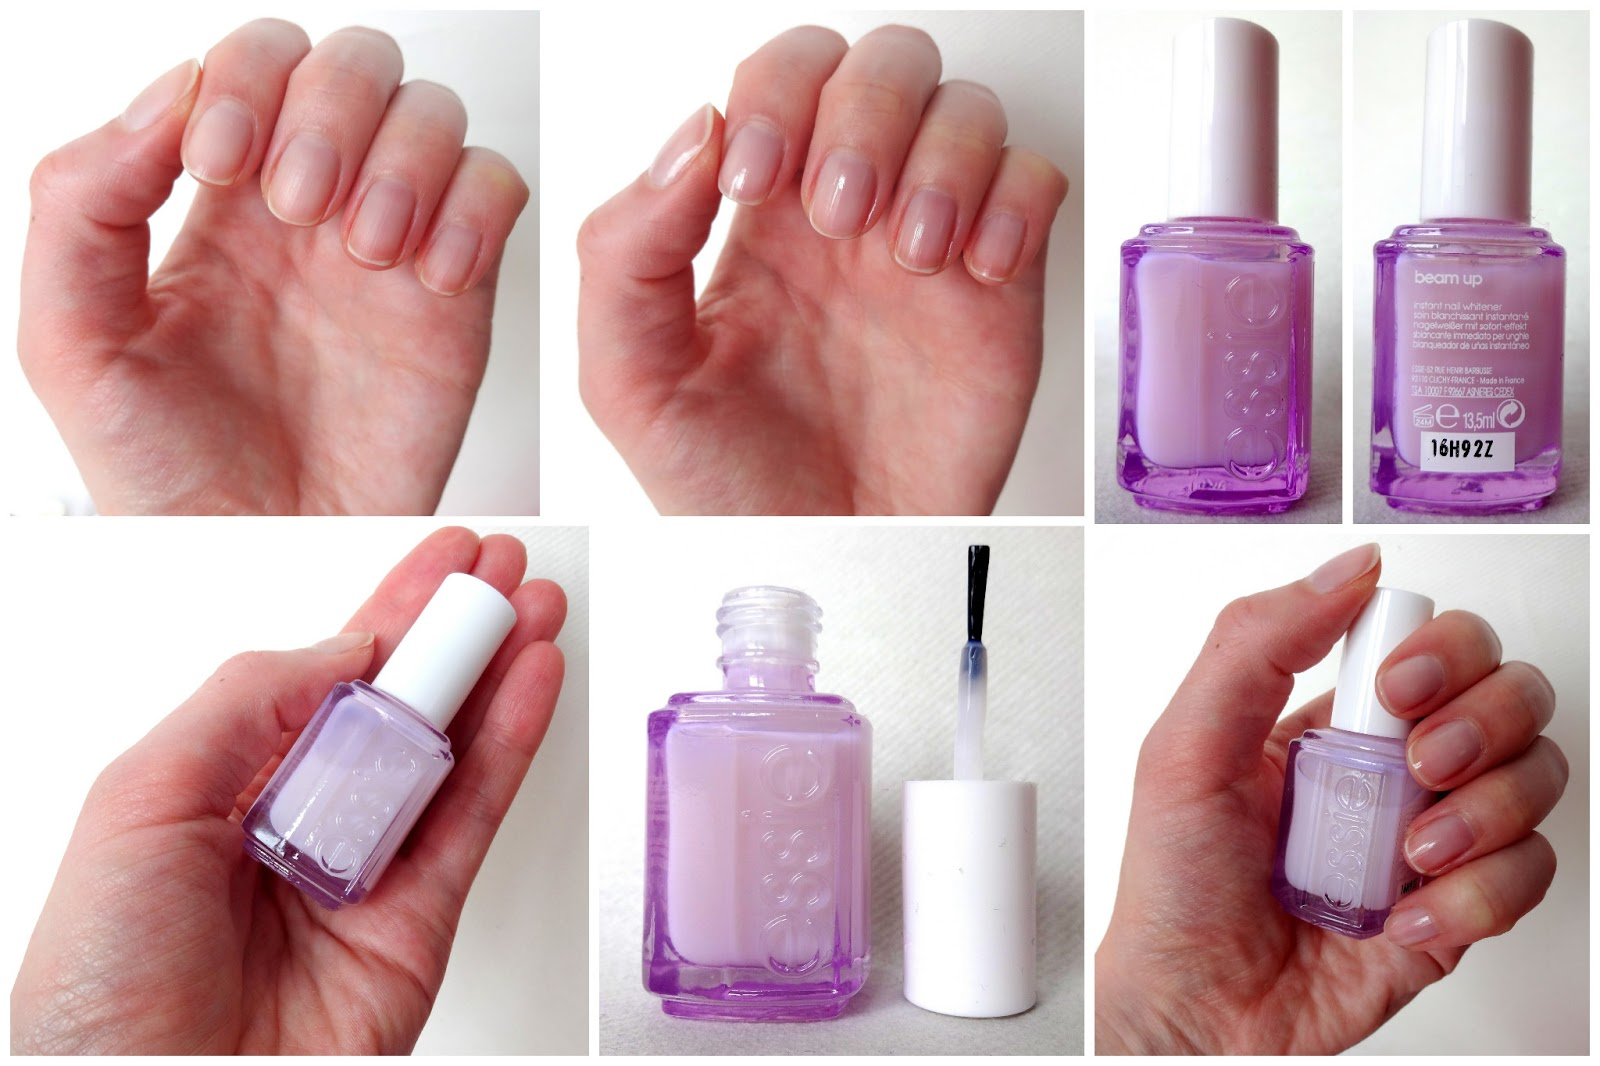 Essie Beam up